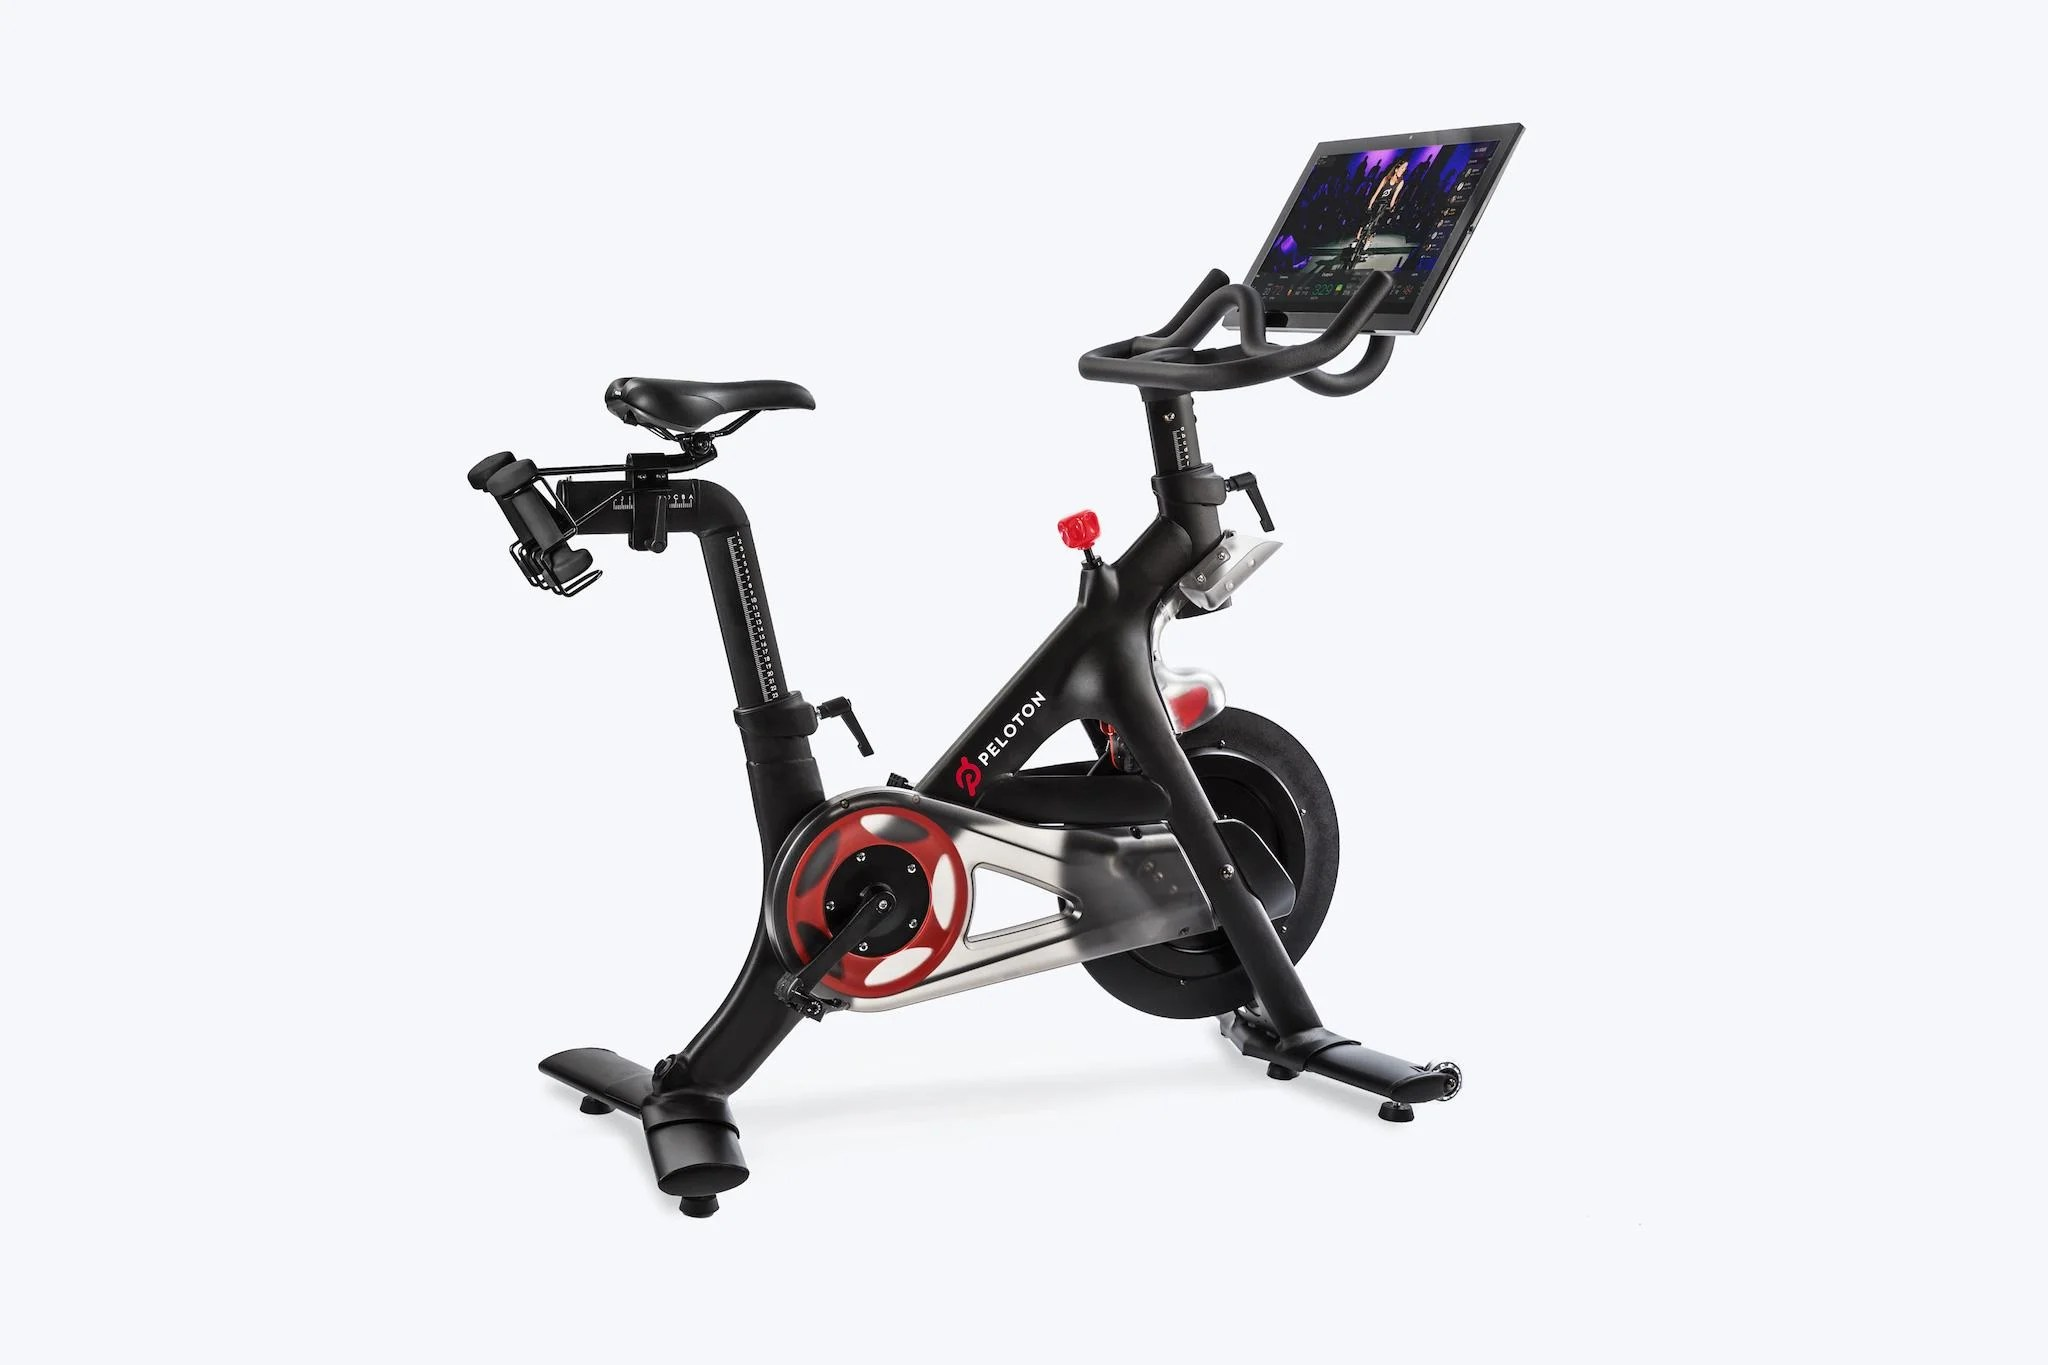 Peloton Bike review: The best way to work out at home and